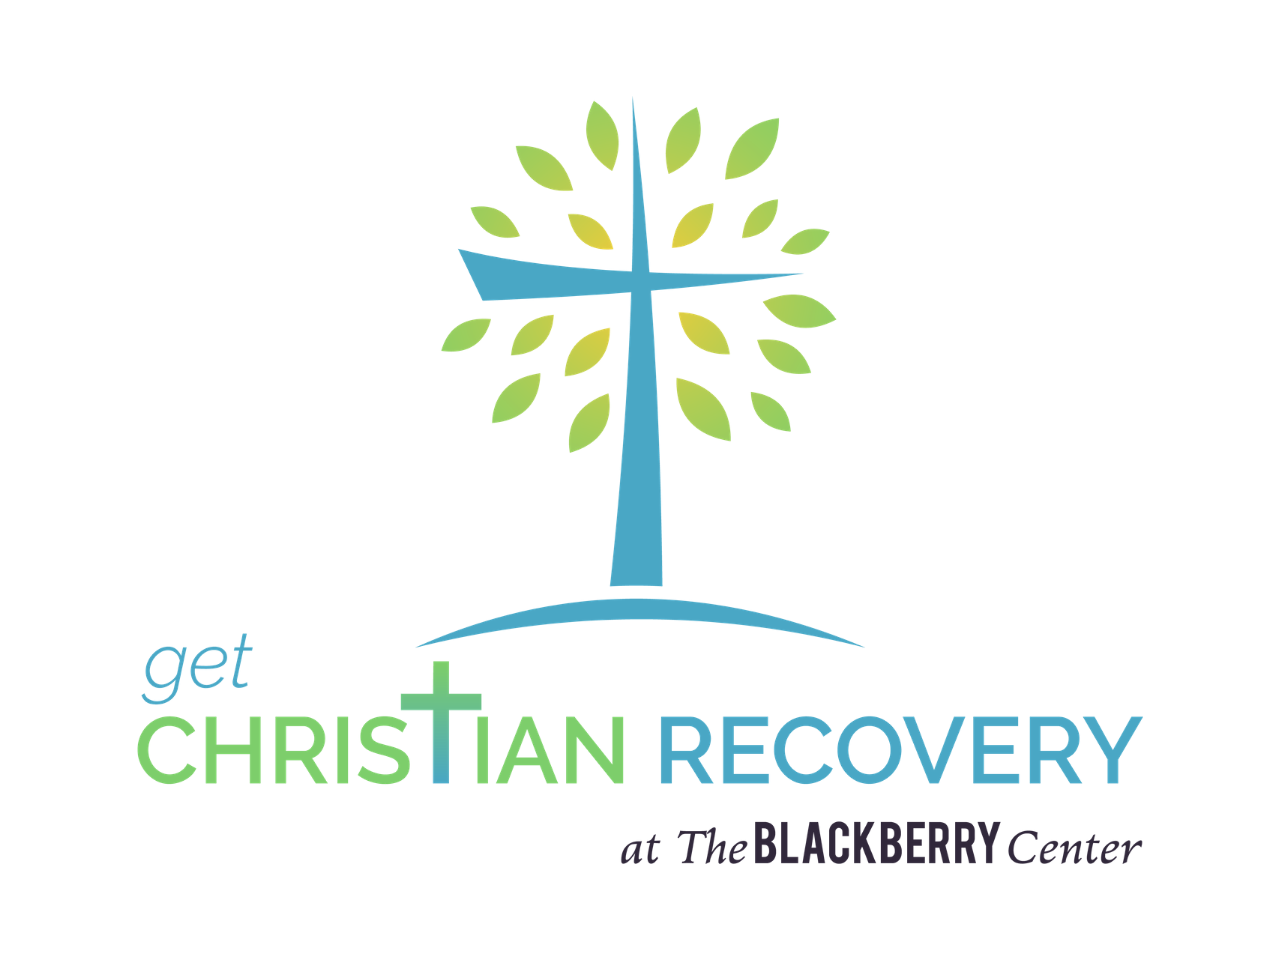 get-christian-recovery-logo-at-the-blackberry-center